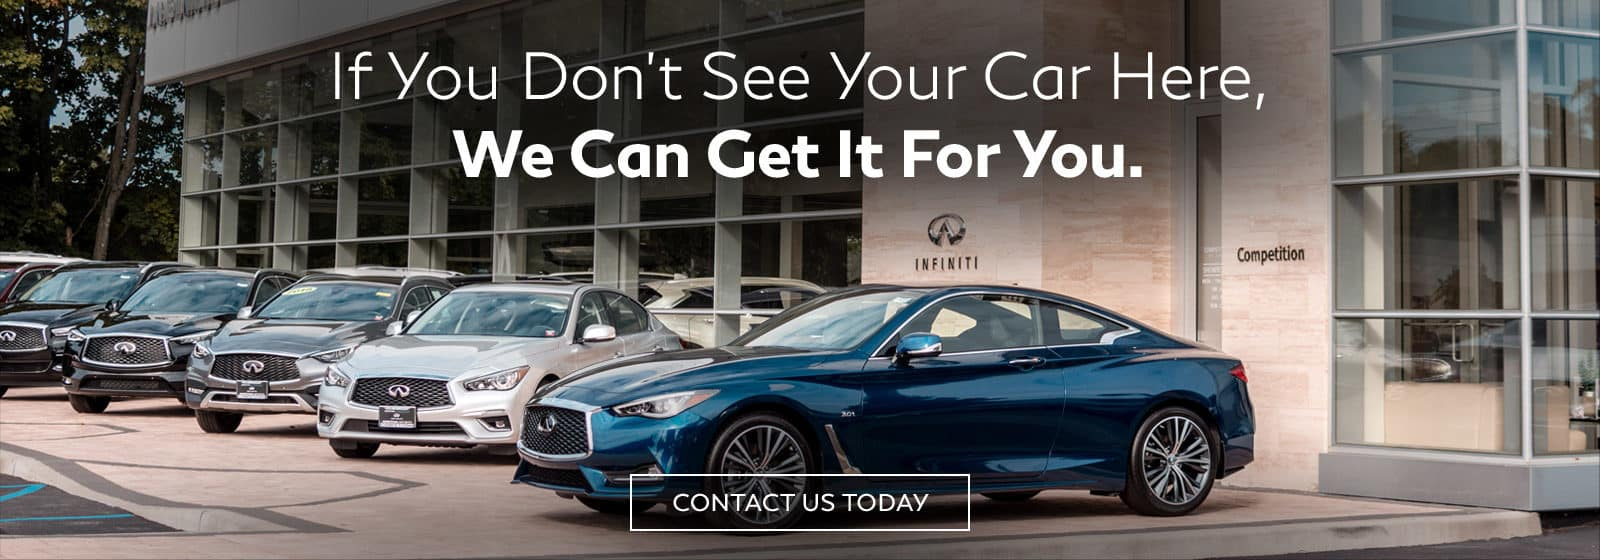 Homepage-Slider-INFINITI-Get-Car-For-You (1)